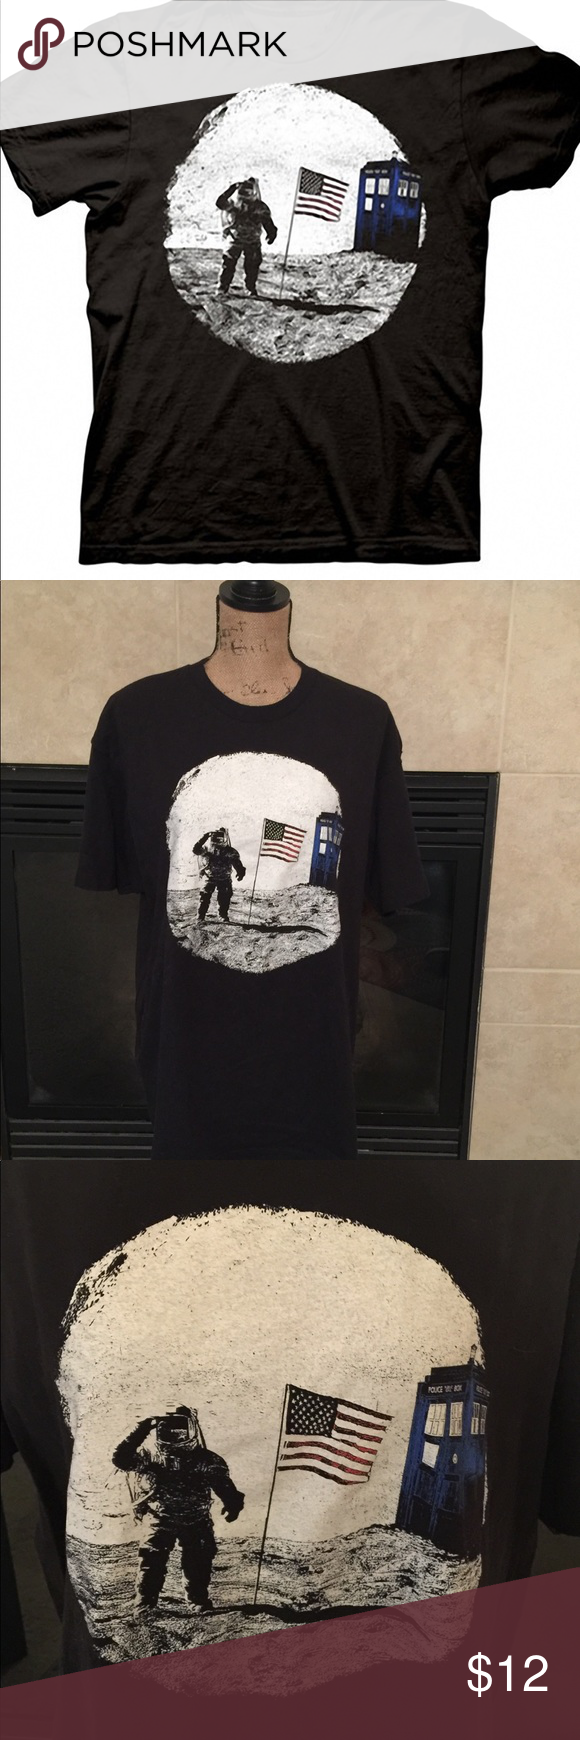 Doctor Who Tardis Moon Landing 100% cotton, preshrunk, black, shirt sleeve Doctor Who Tee. Purchased at Comic Con and worn only once or twice. A must for any fan of the Doctor. Size XL Tops Tees - Short Sleeve